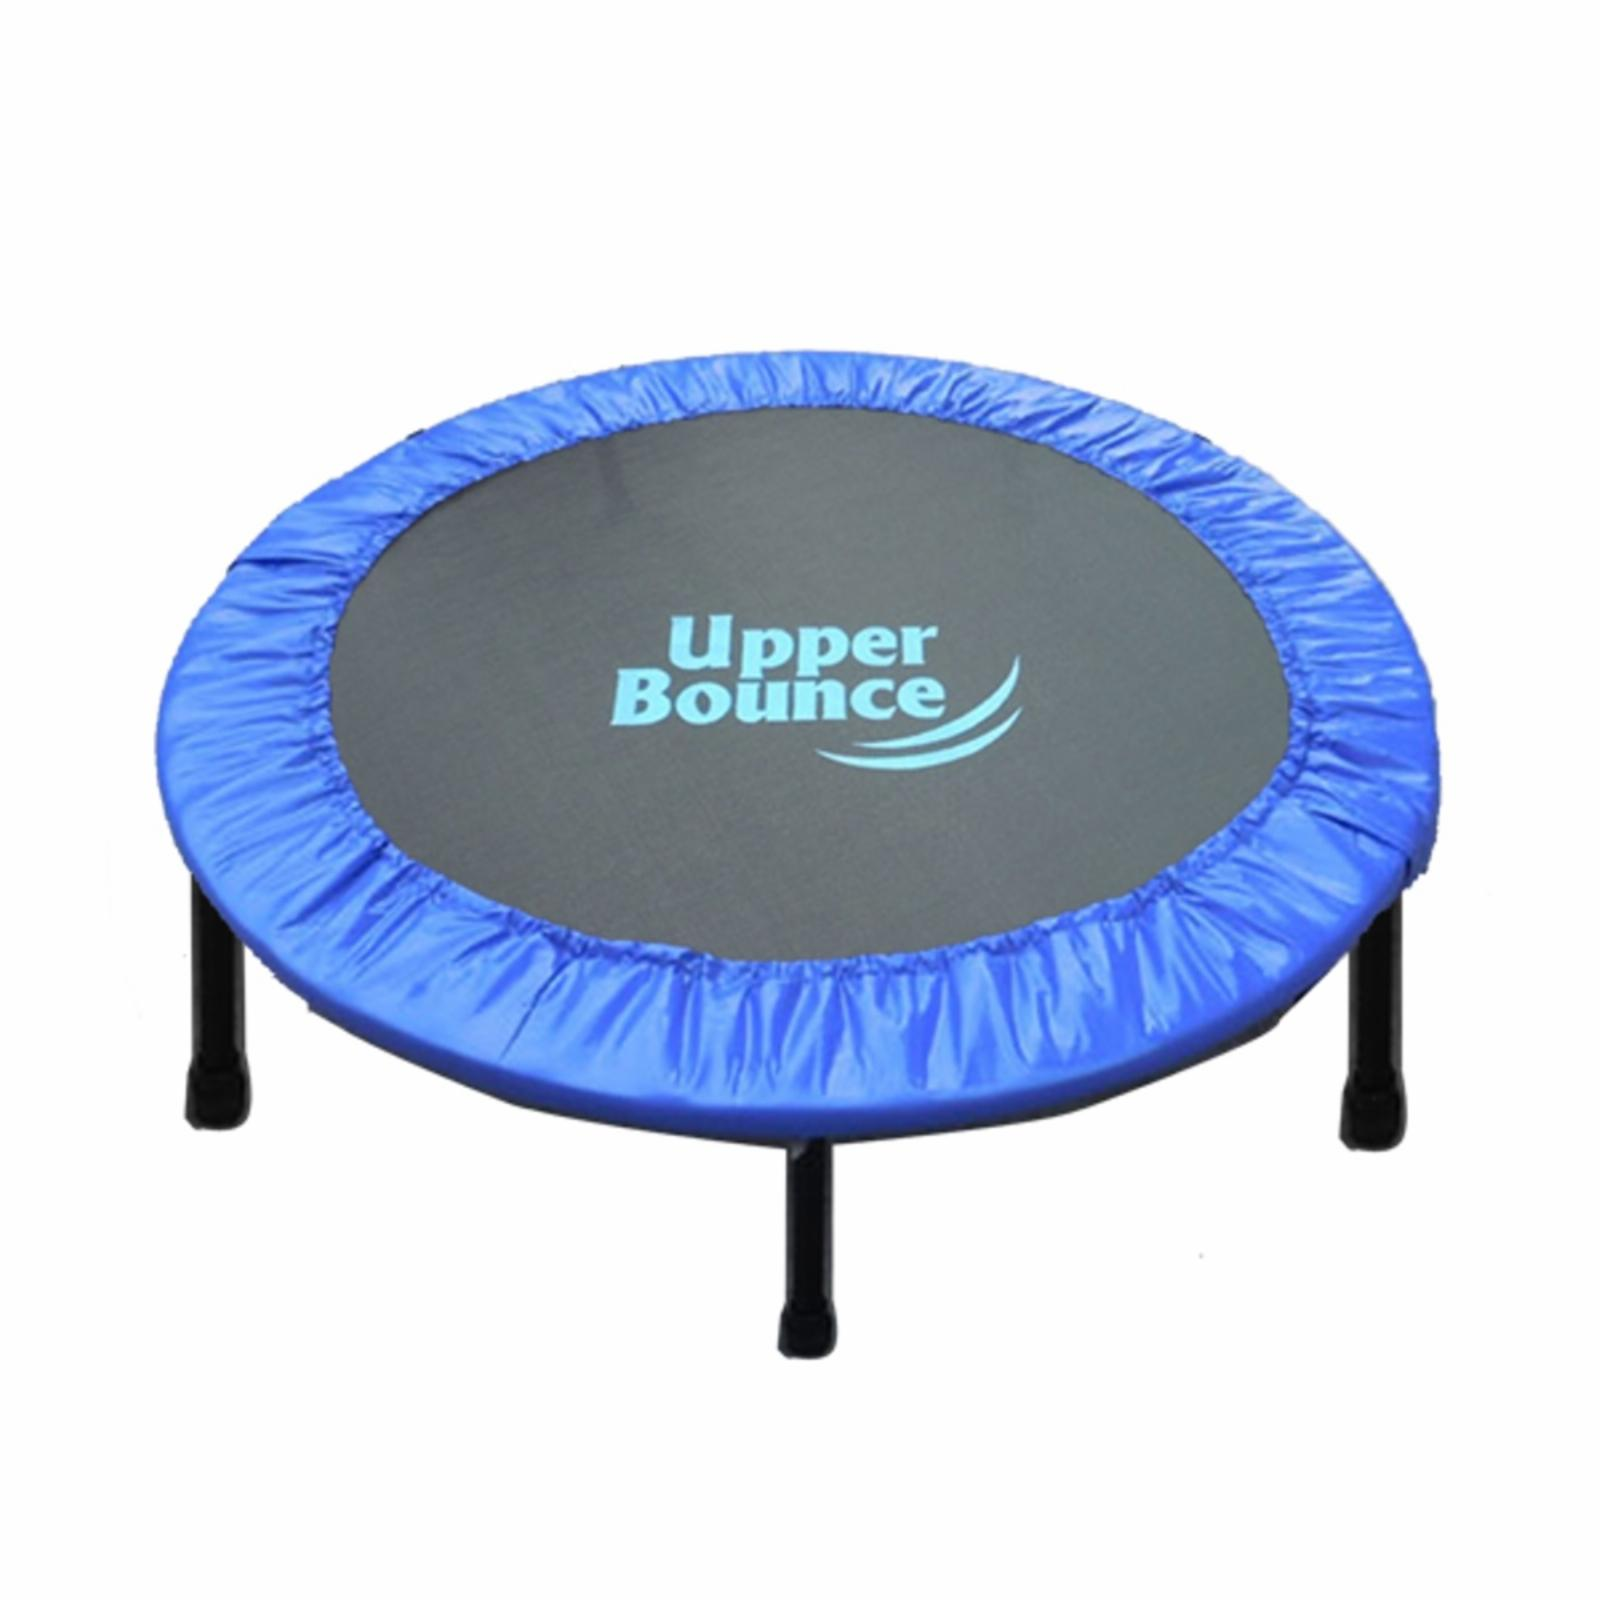 Upper Bounce 44 in. Mini Foldable Rebounder Fitness Trampoline - UBSF01-44